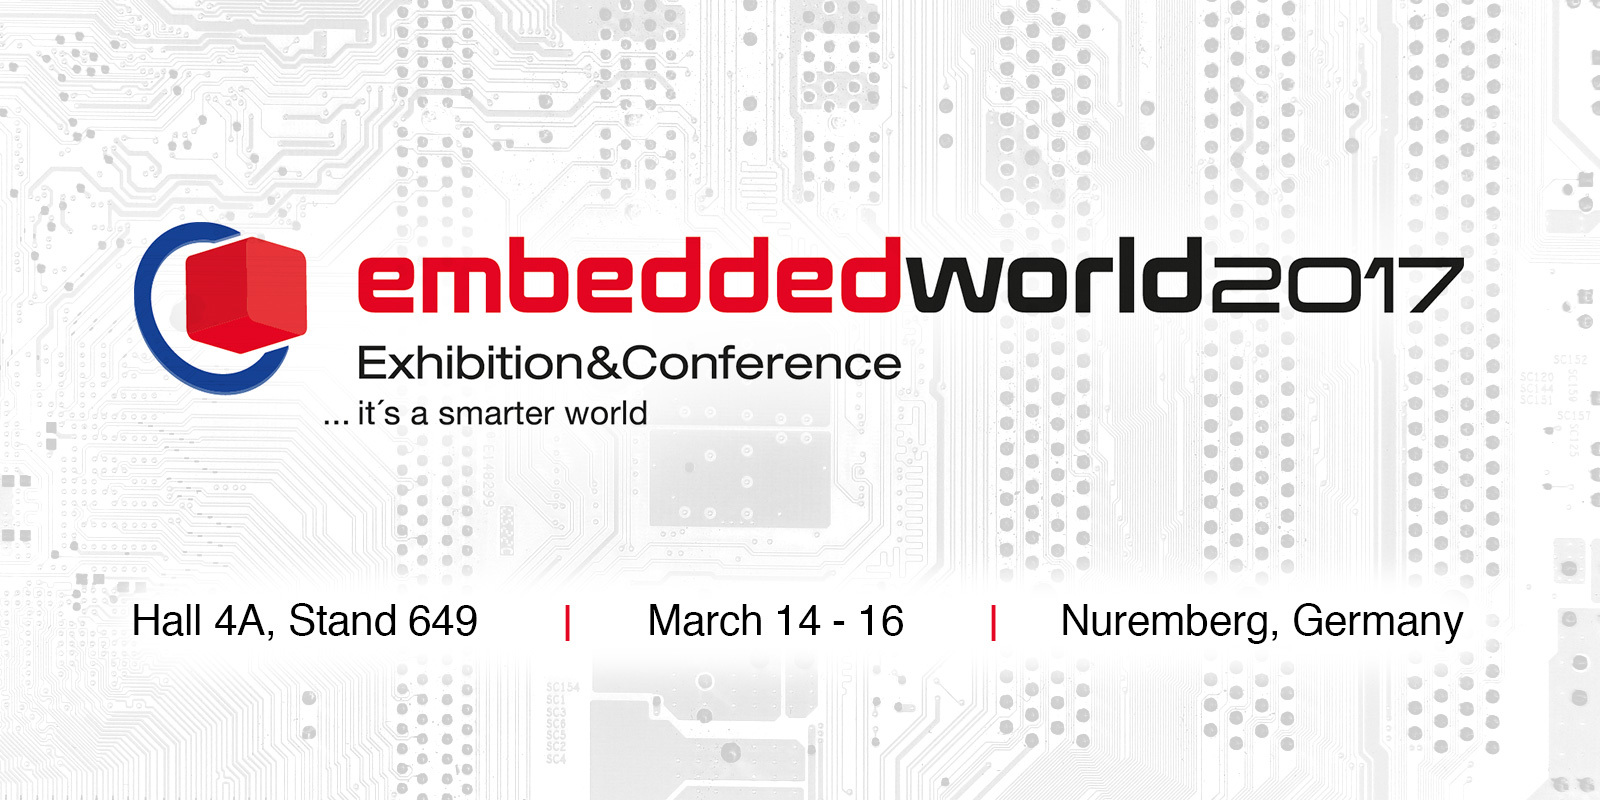 Italtronic invites you at EMBEDDED WORLD 2017 Nuremberg • Germany